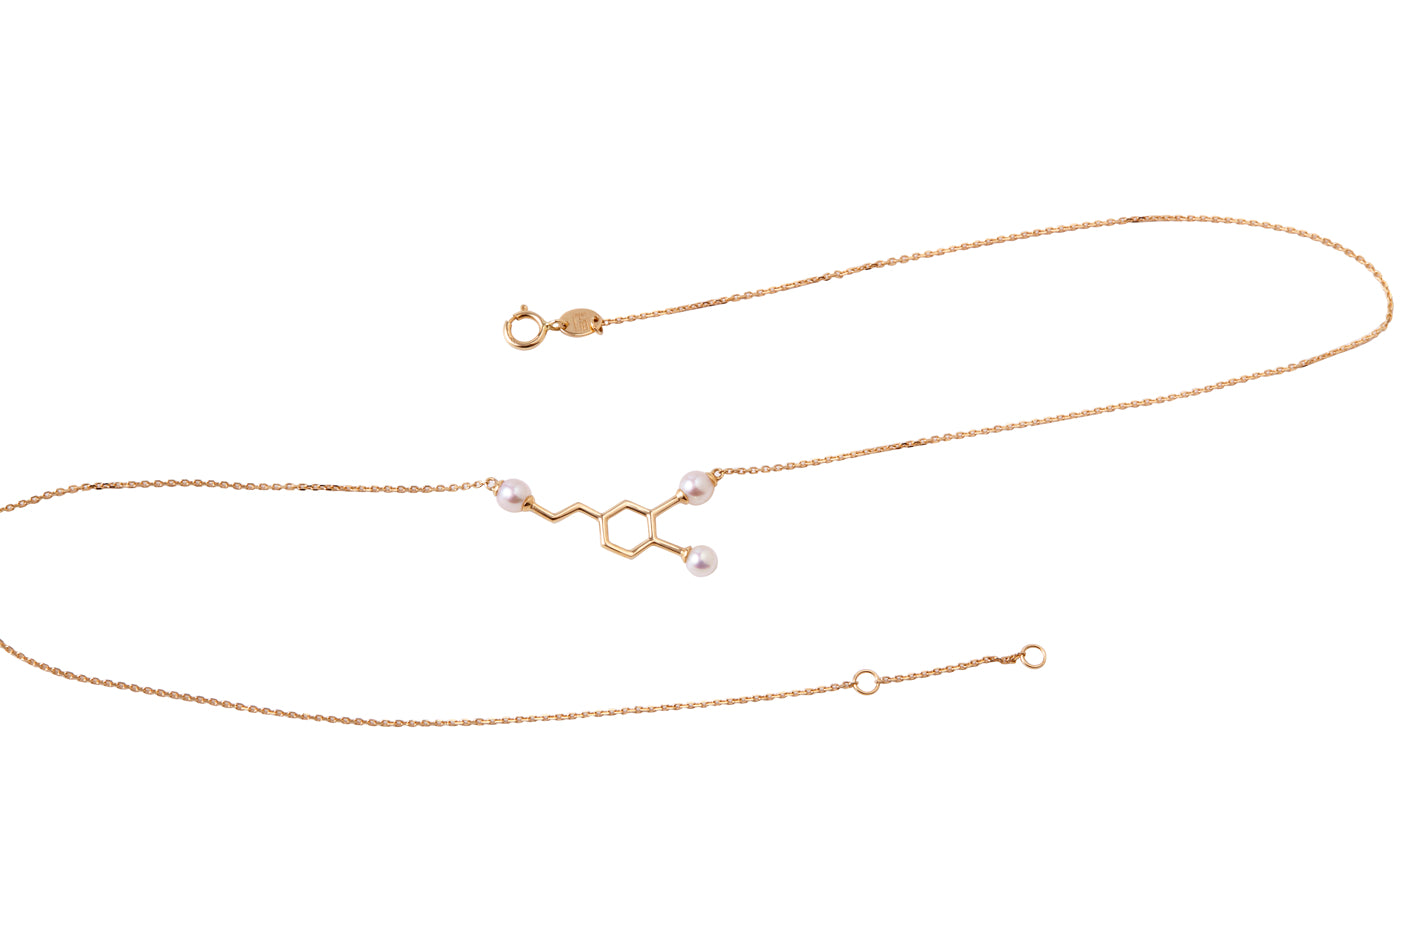 14k Gold and Japanese AKOYA Pearl Dopamine Necklace